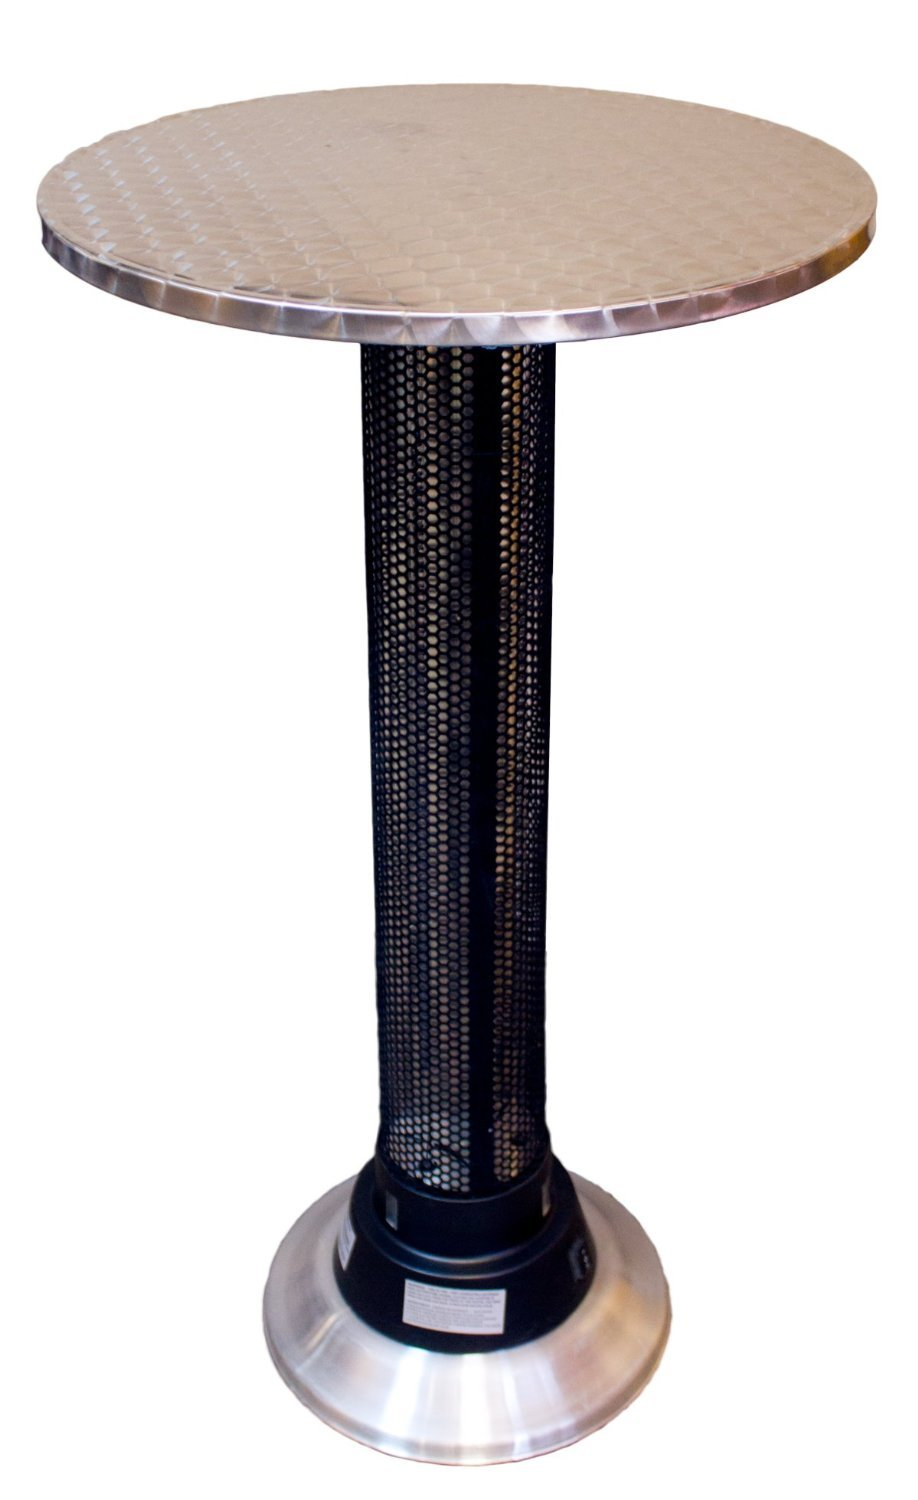 Premium Bar Table for Patio Outdoor Pool in Modern Round Heater Top Contemporary Furniture Design